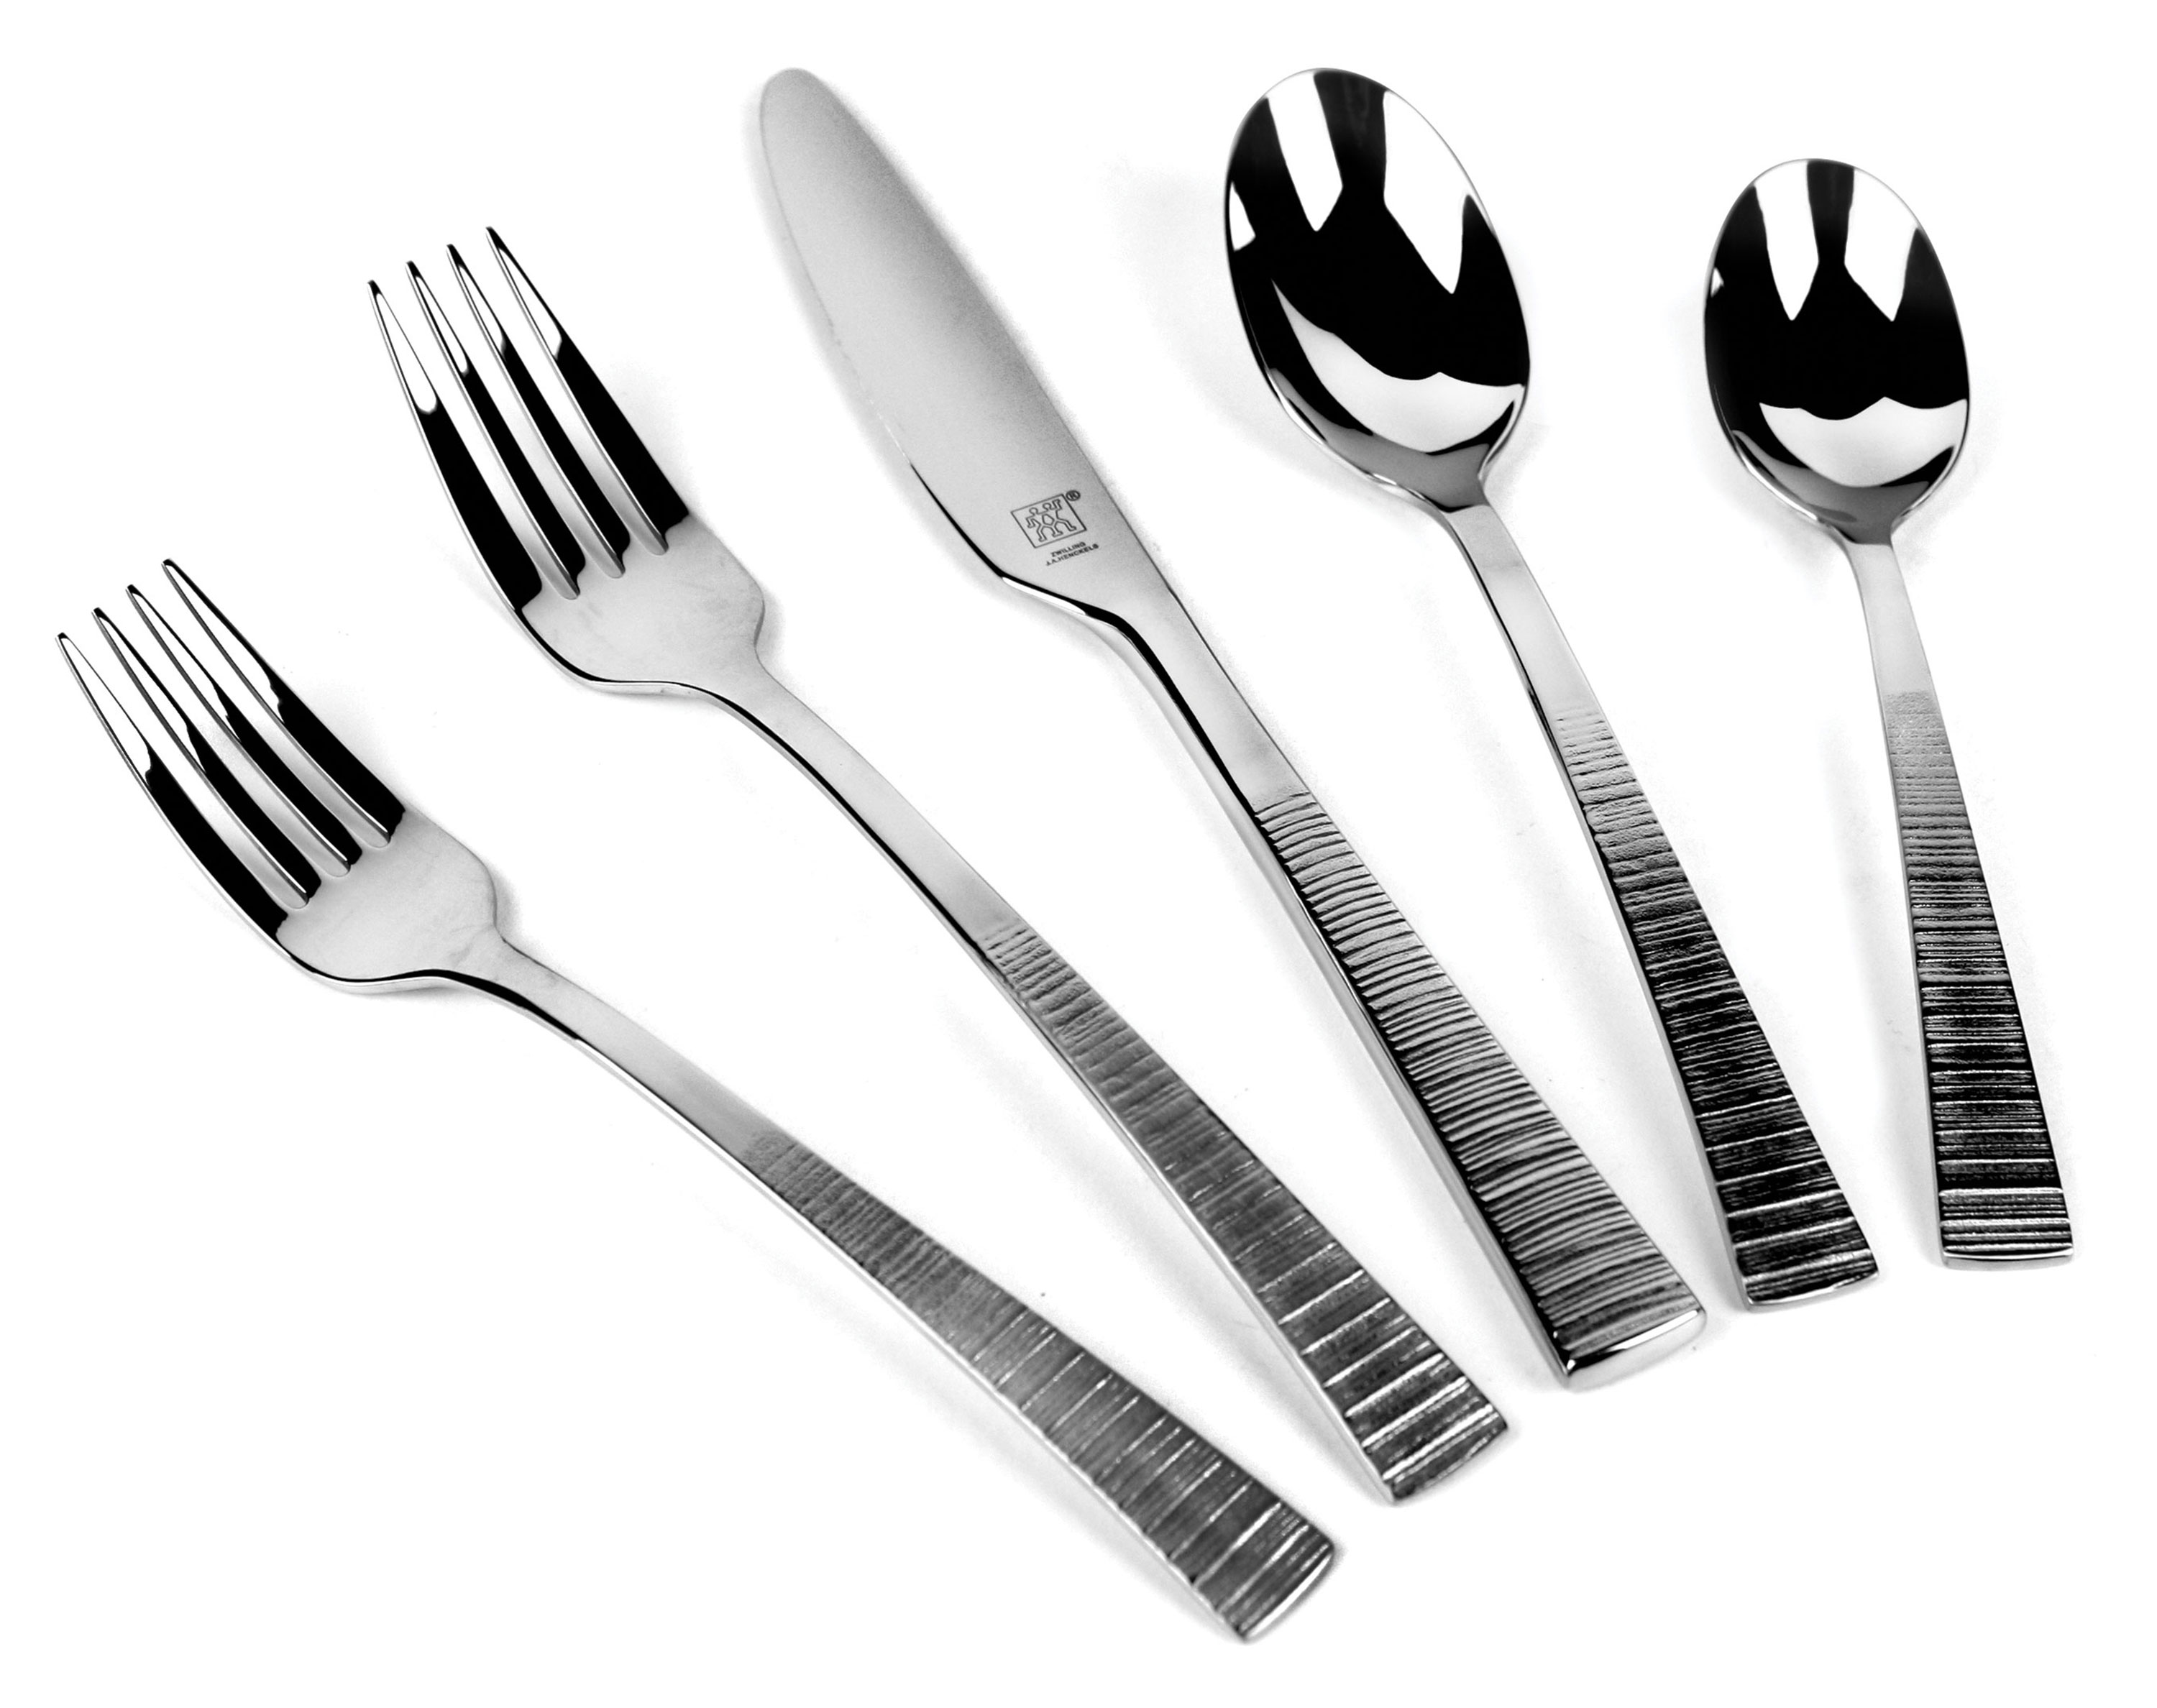 100 unique flatware sets zwilling j a henckels Unique flatware sets